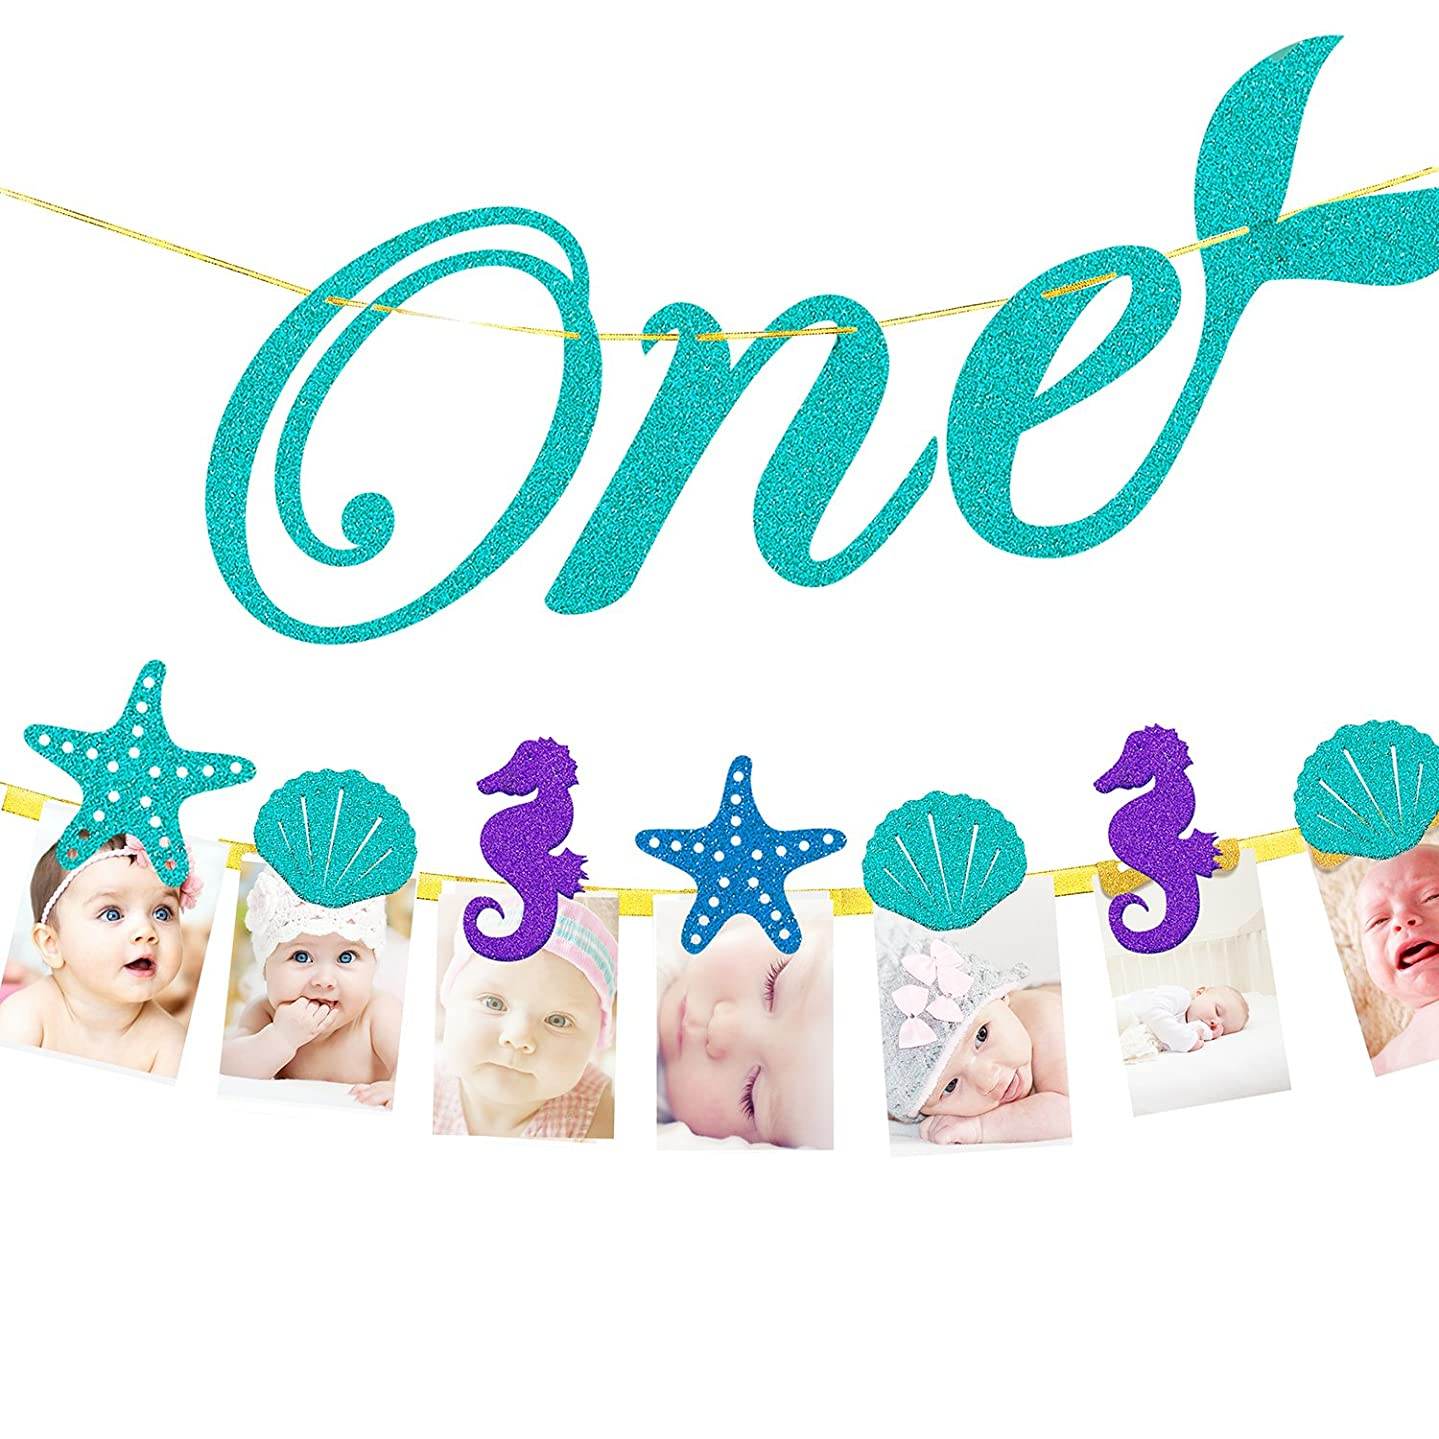 Little Princess 1st Birthday Party Decorations - Monthly Milestone Photo Banner for Newborn to 12 Months, 1-12 Month Ocean Theme Numbering Photo Holder.